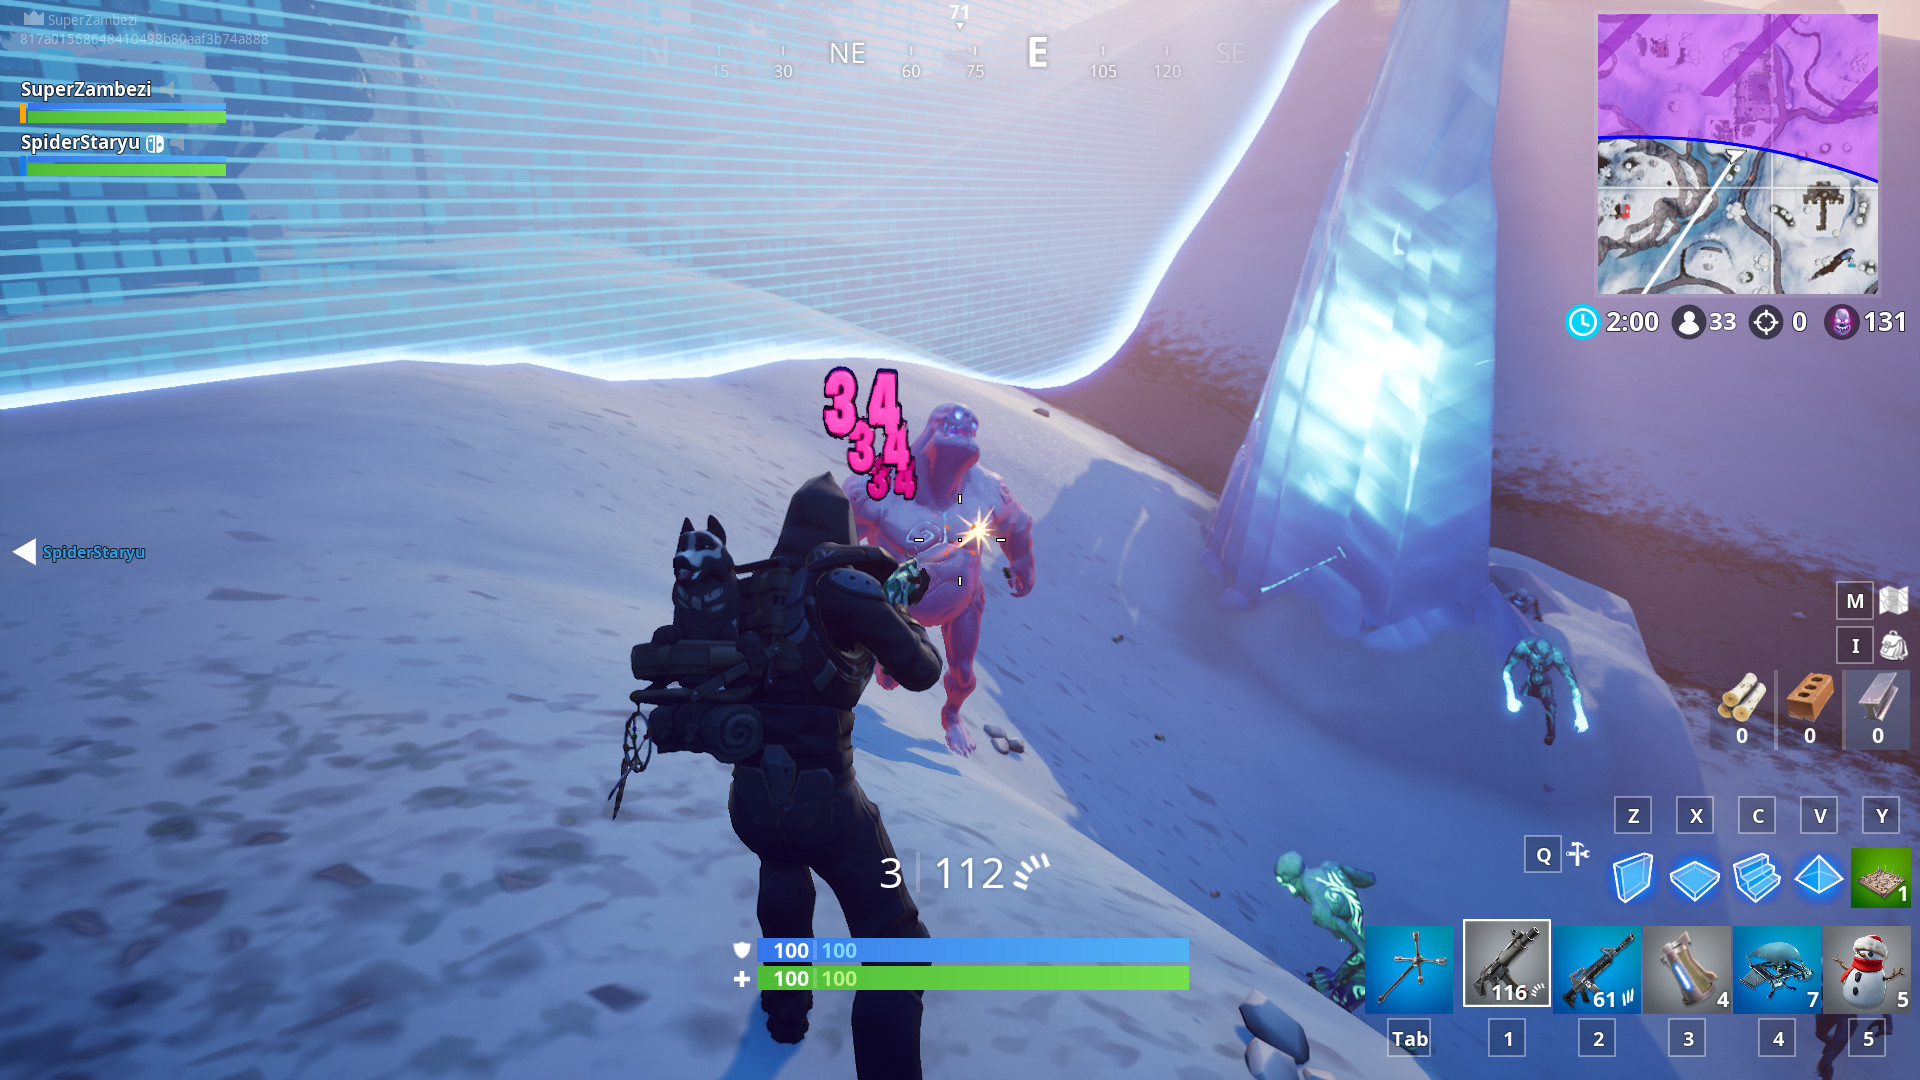 1920x1080 Ice Storm Challenges - Gold Ice Brutes, Elite Members - Fortnite Wiki Guide  - IGN